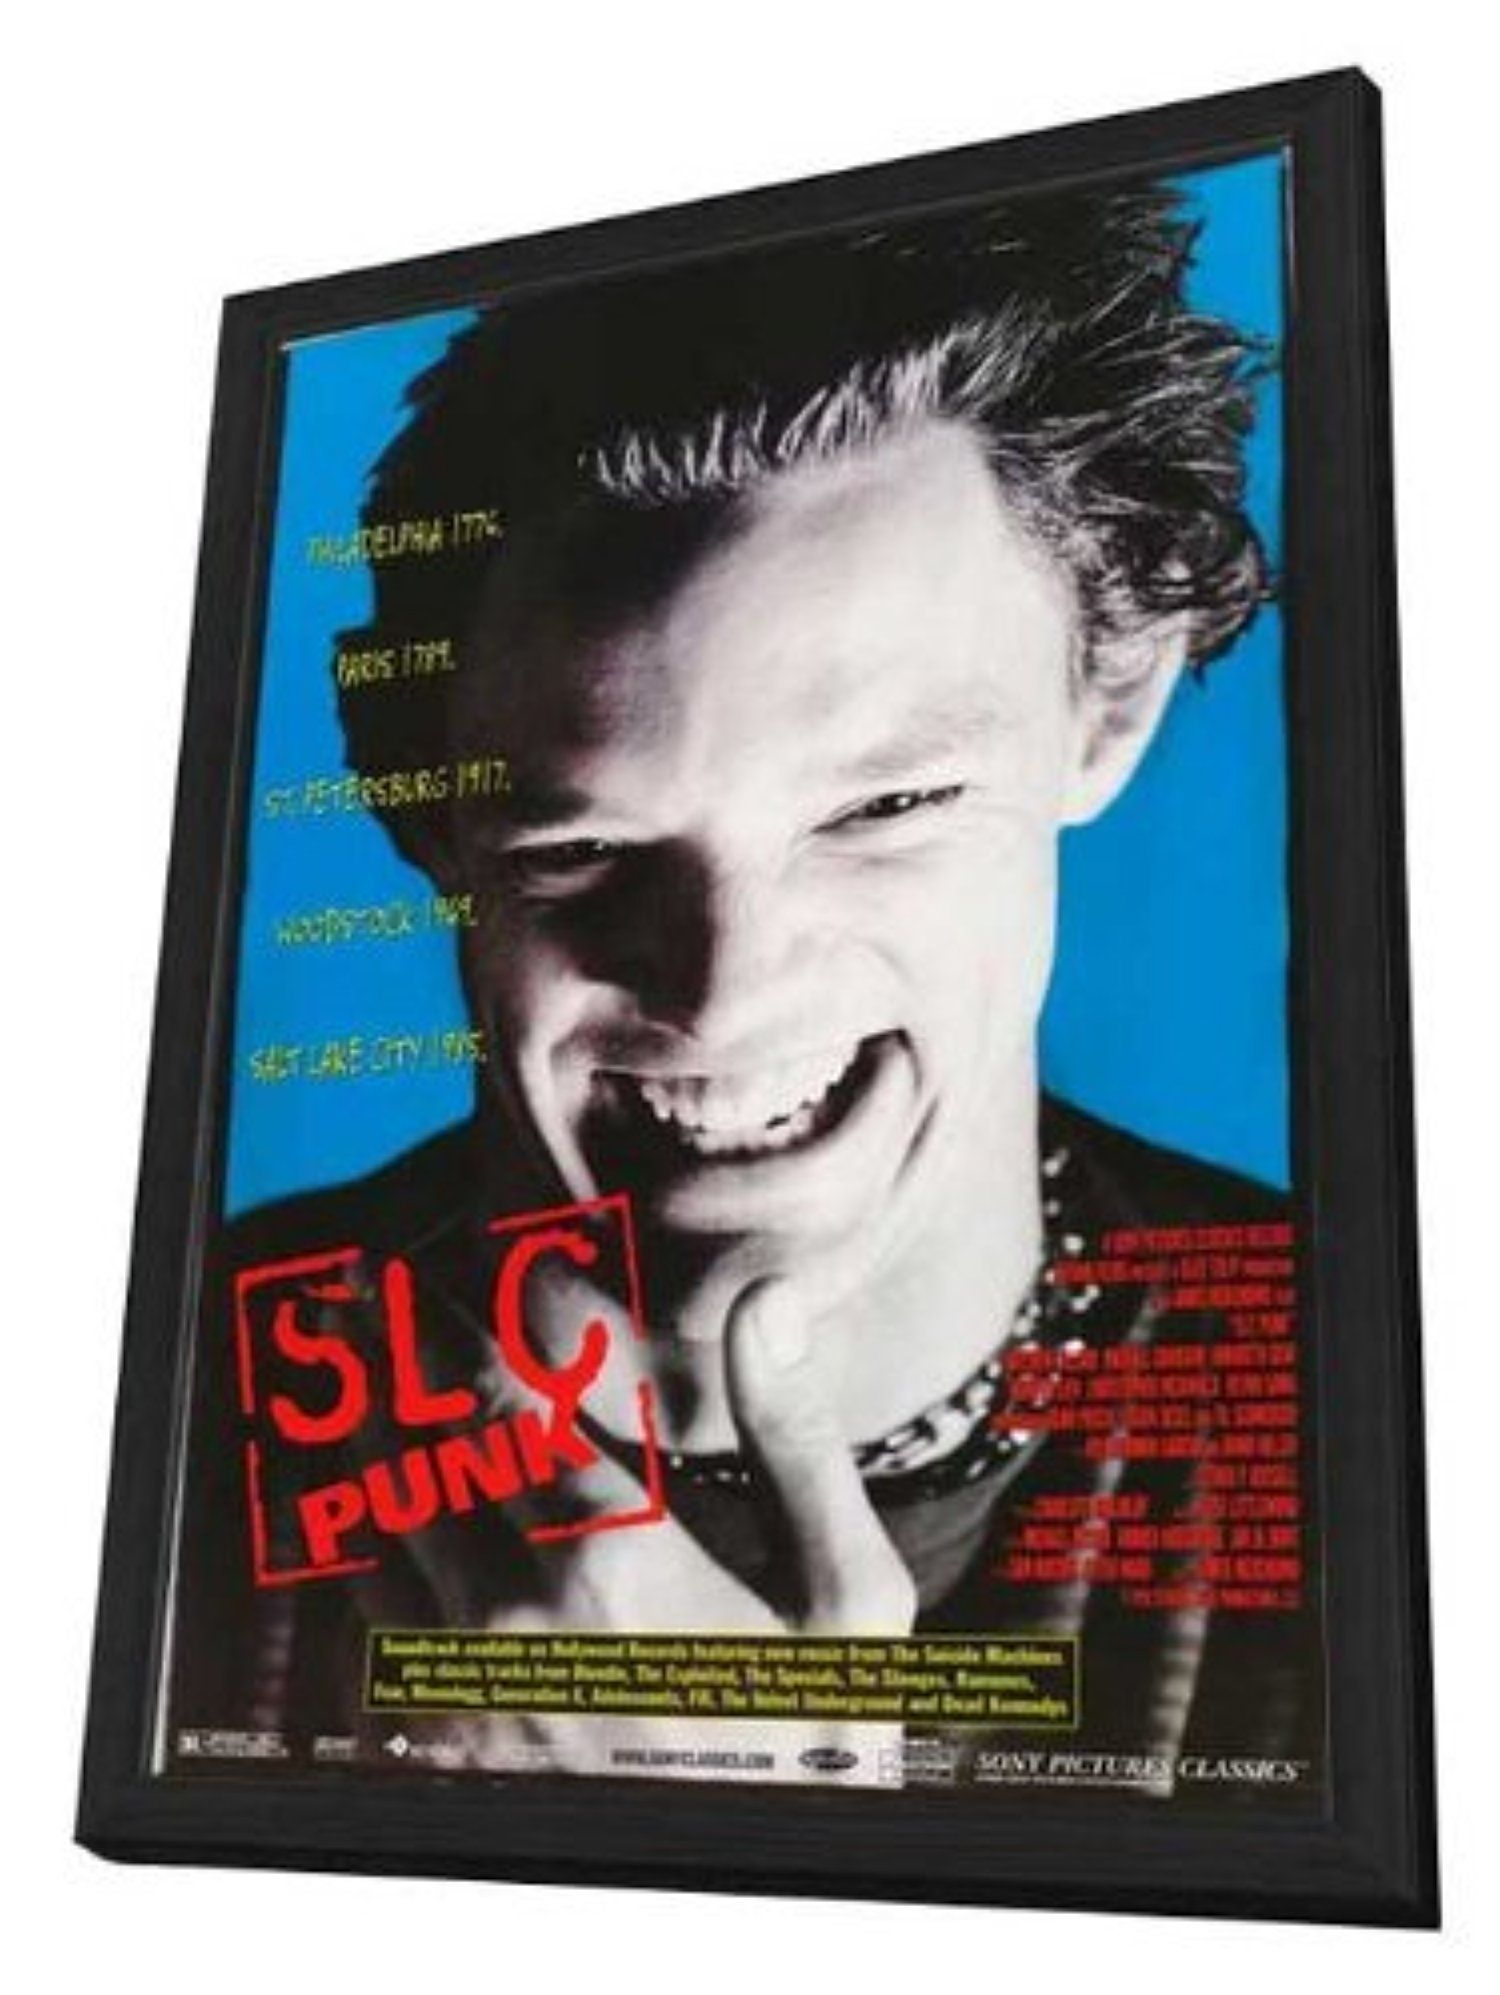 Decal jewelry slc punk 27 x 40 movie poster style c in delu 27 x 40 movie poster style c in delu jeuxipadfo Gallery